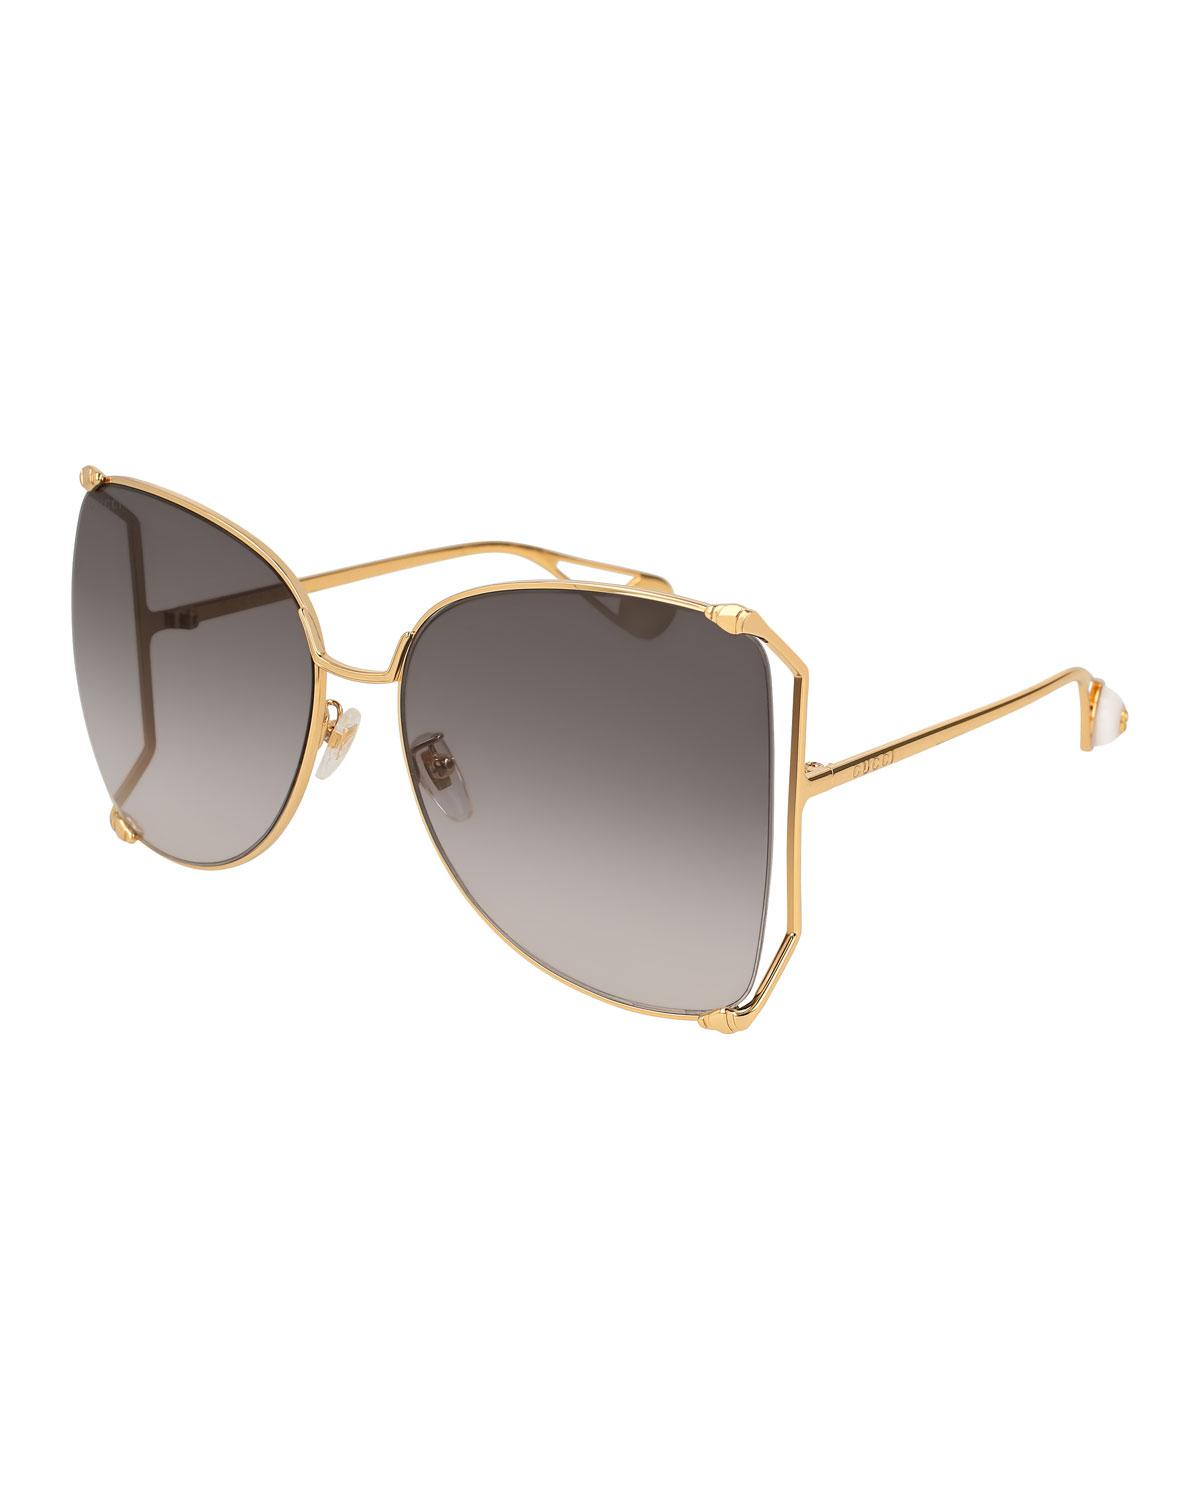 d48472875a Lyst - Gucci Oversized Metal Butterfly Sunglasses in Metallic